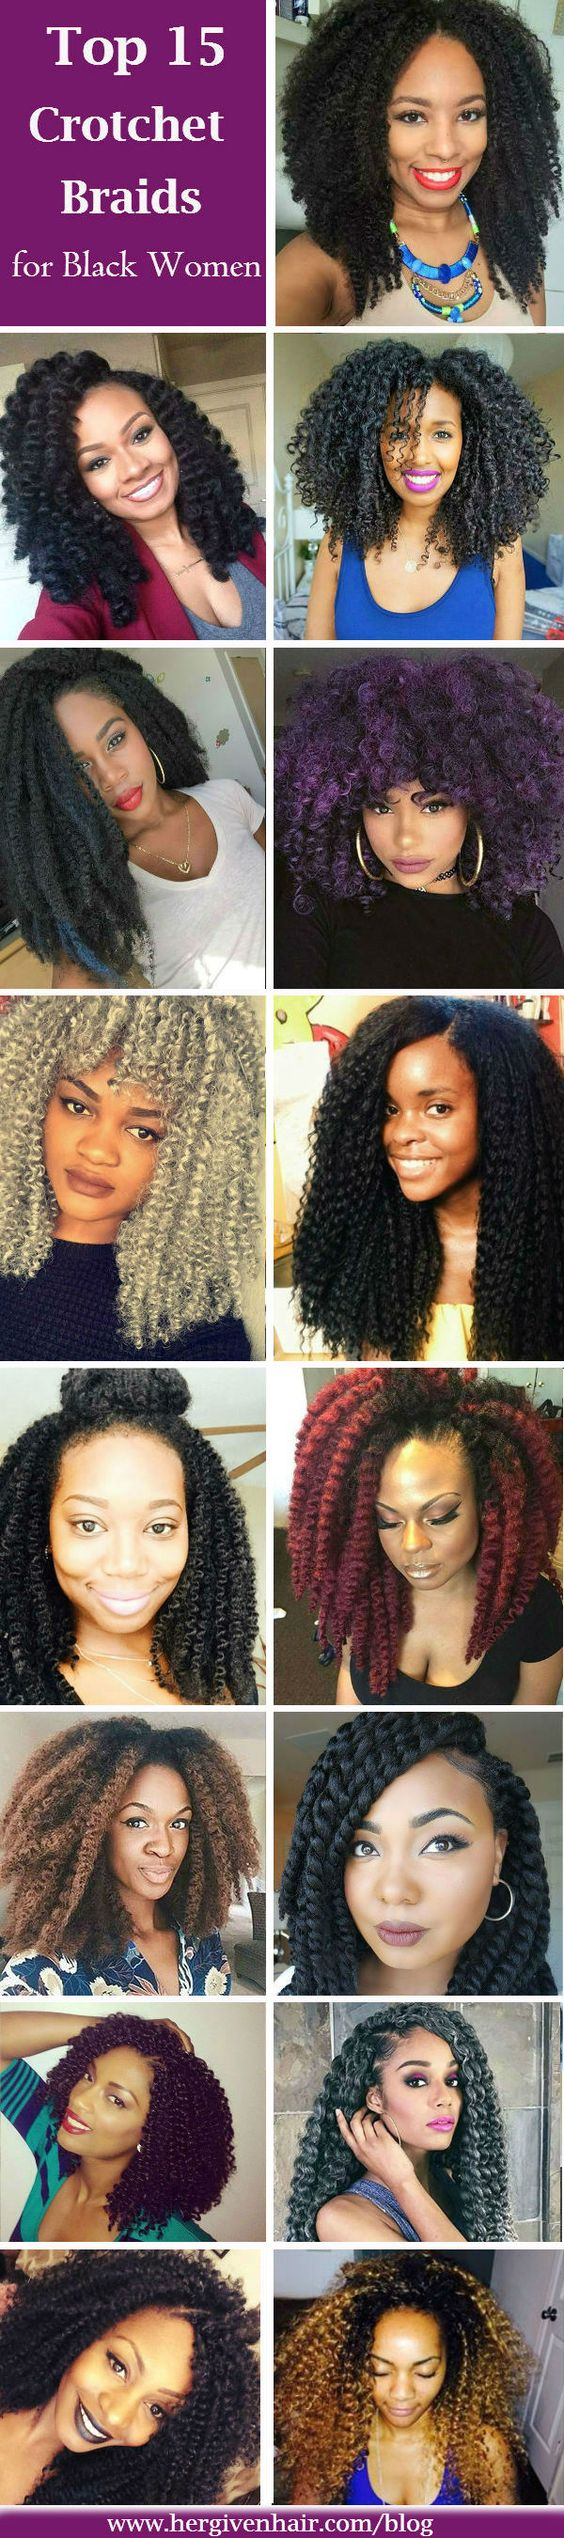 Top 15 protective crochet braids for black women: